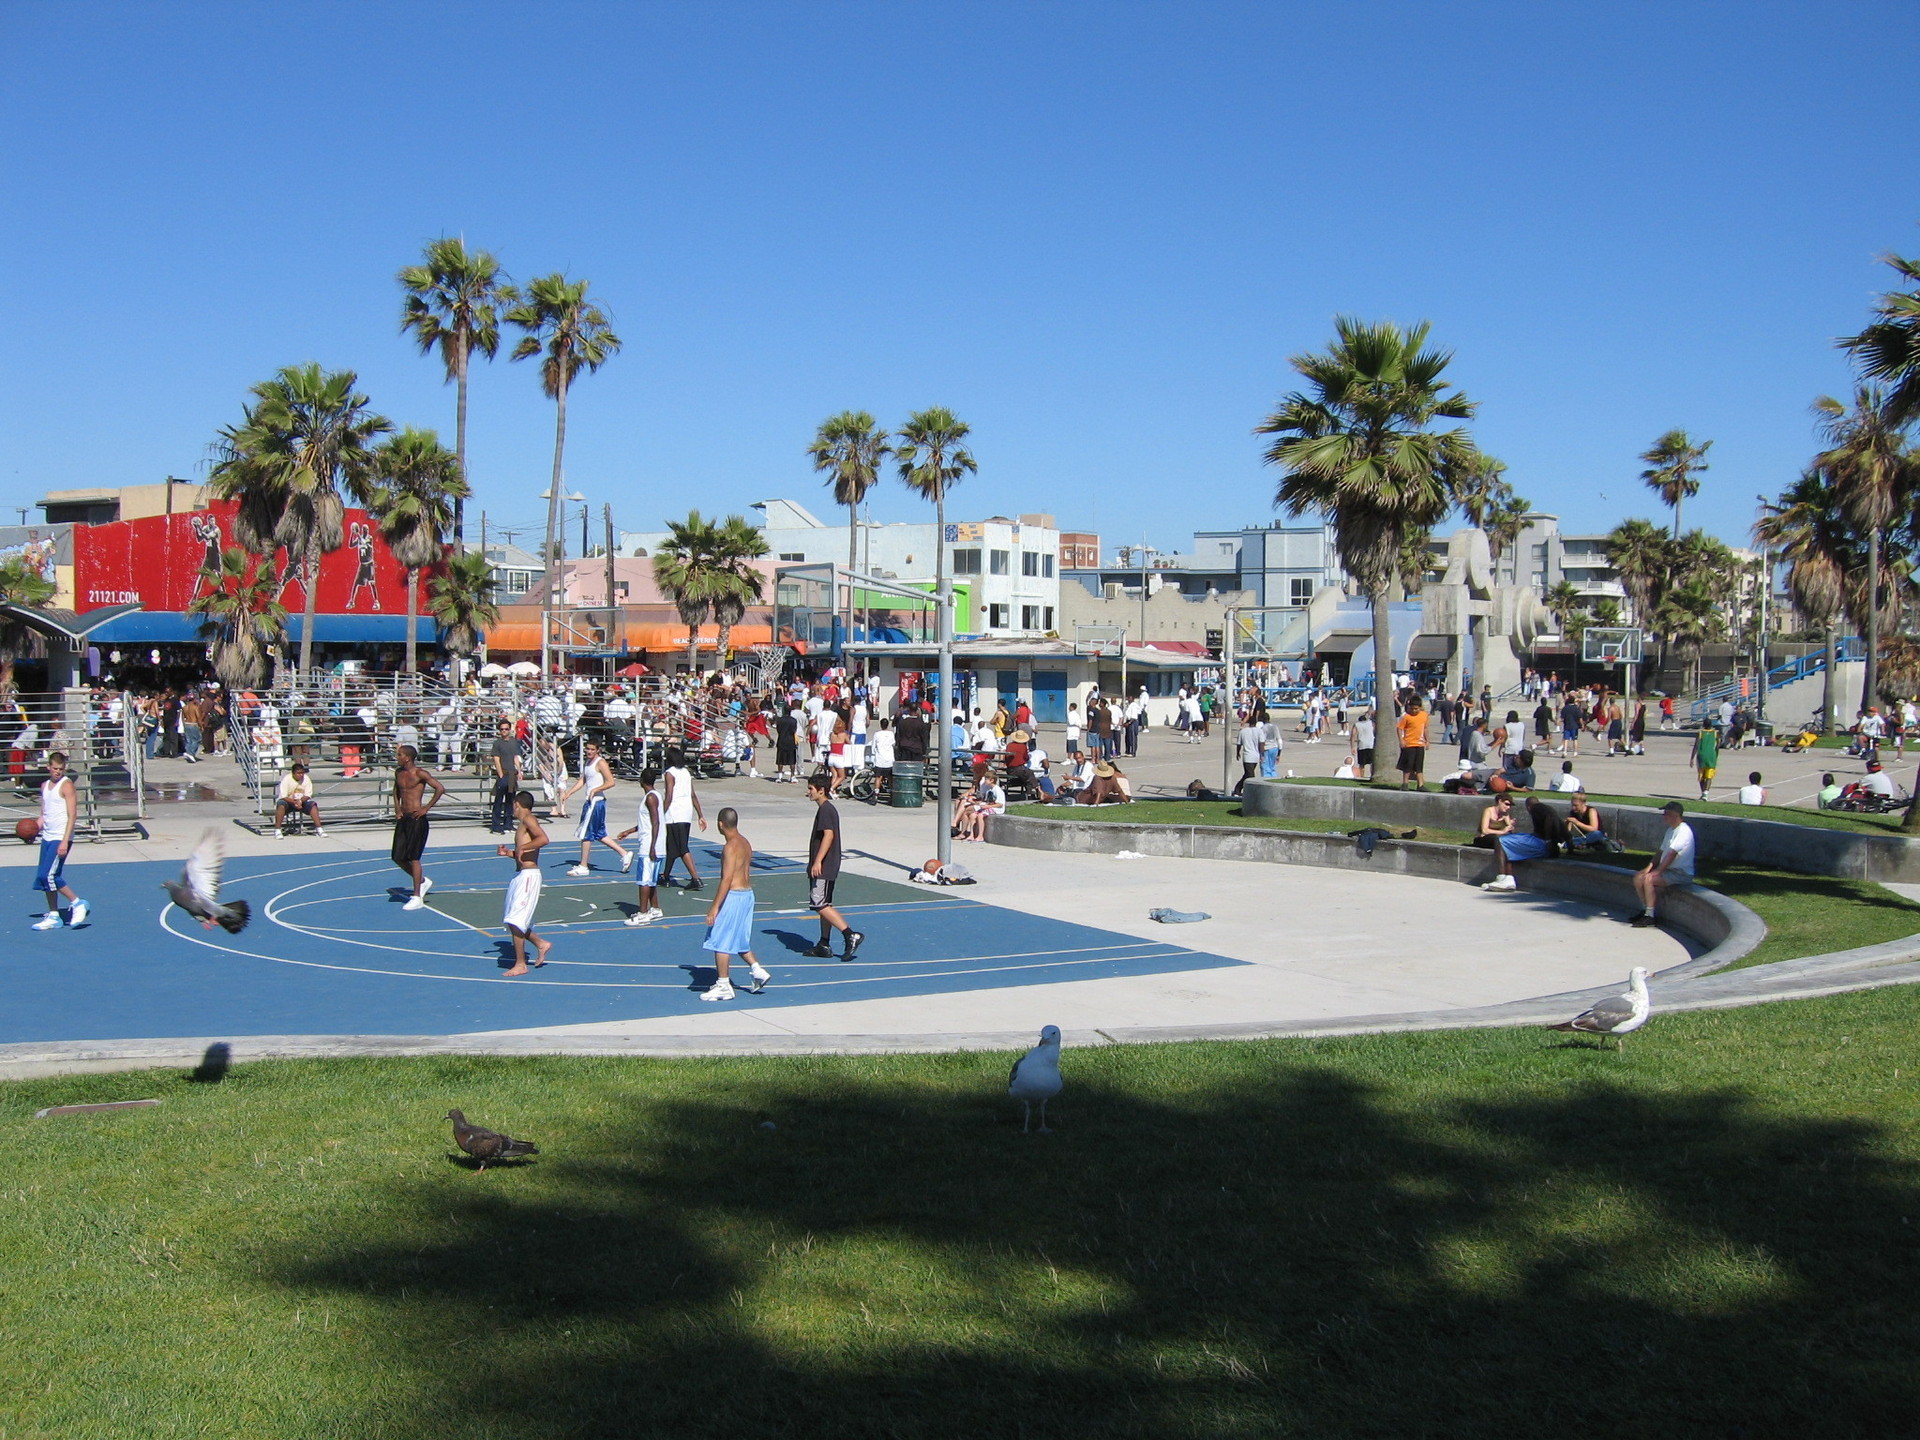 http://images1.fanpop.com/images/image_uploads/Venice-Beach-los-angeles-1105928_1920_1440.jpg